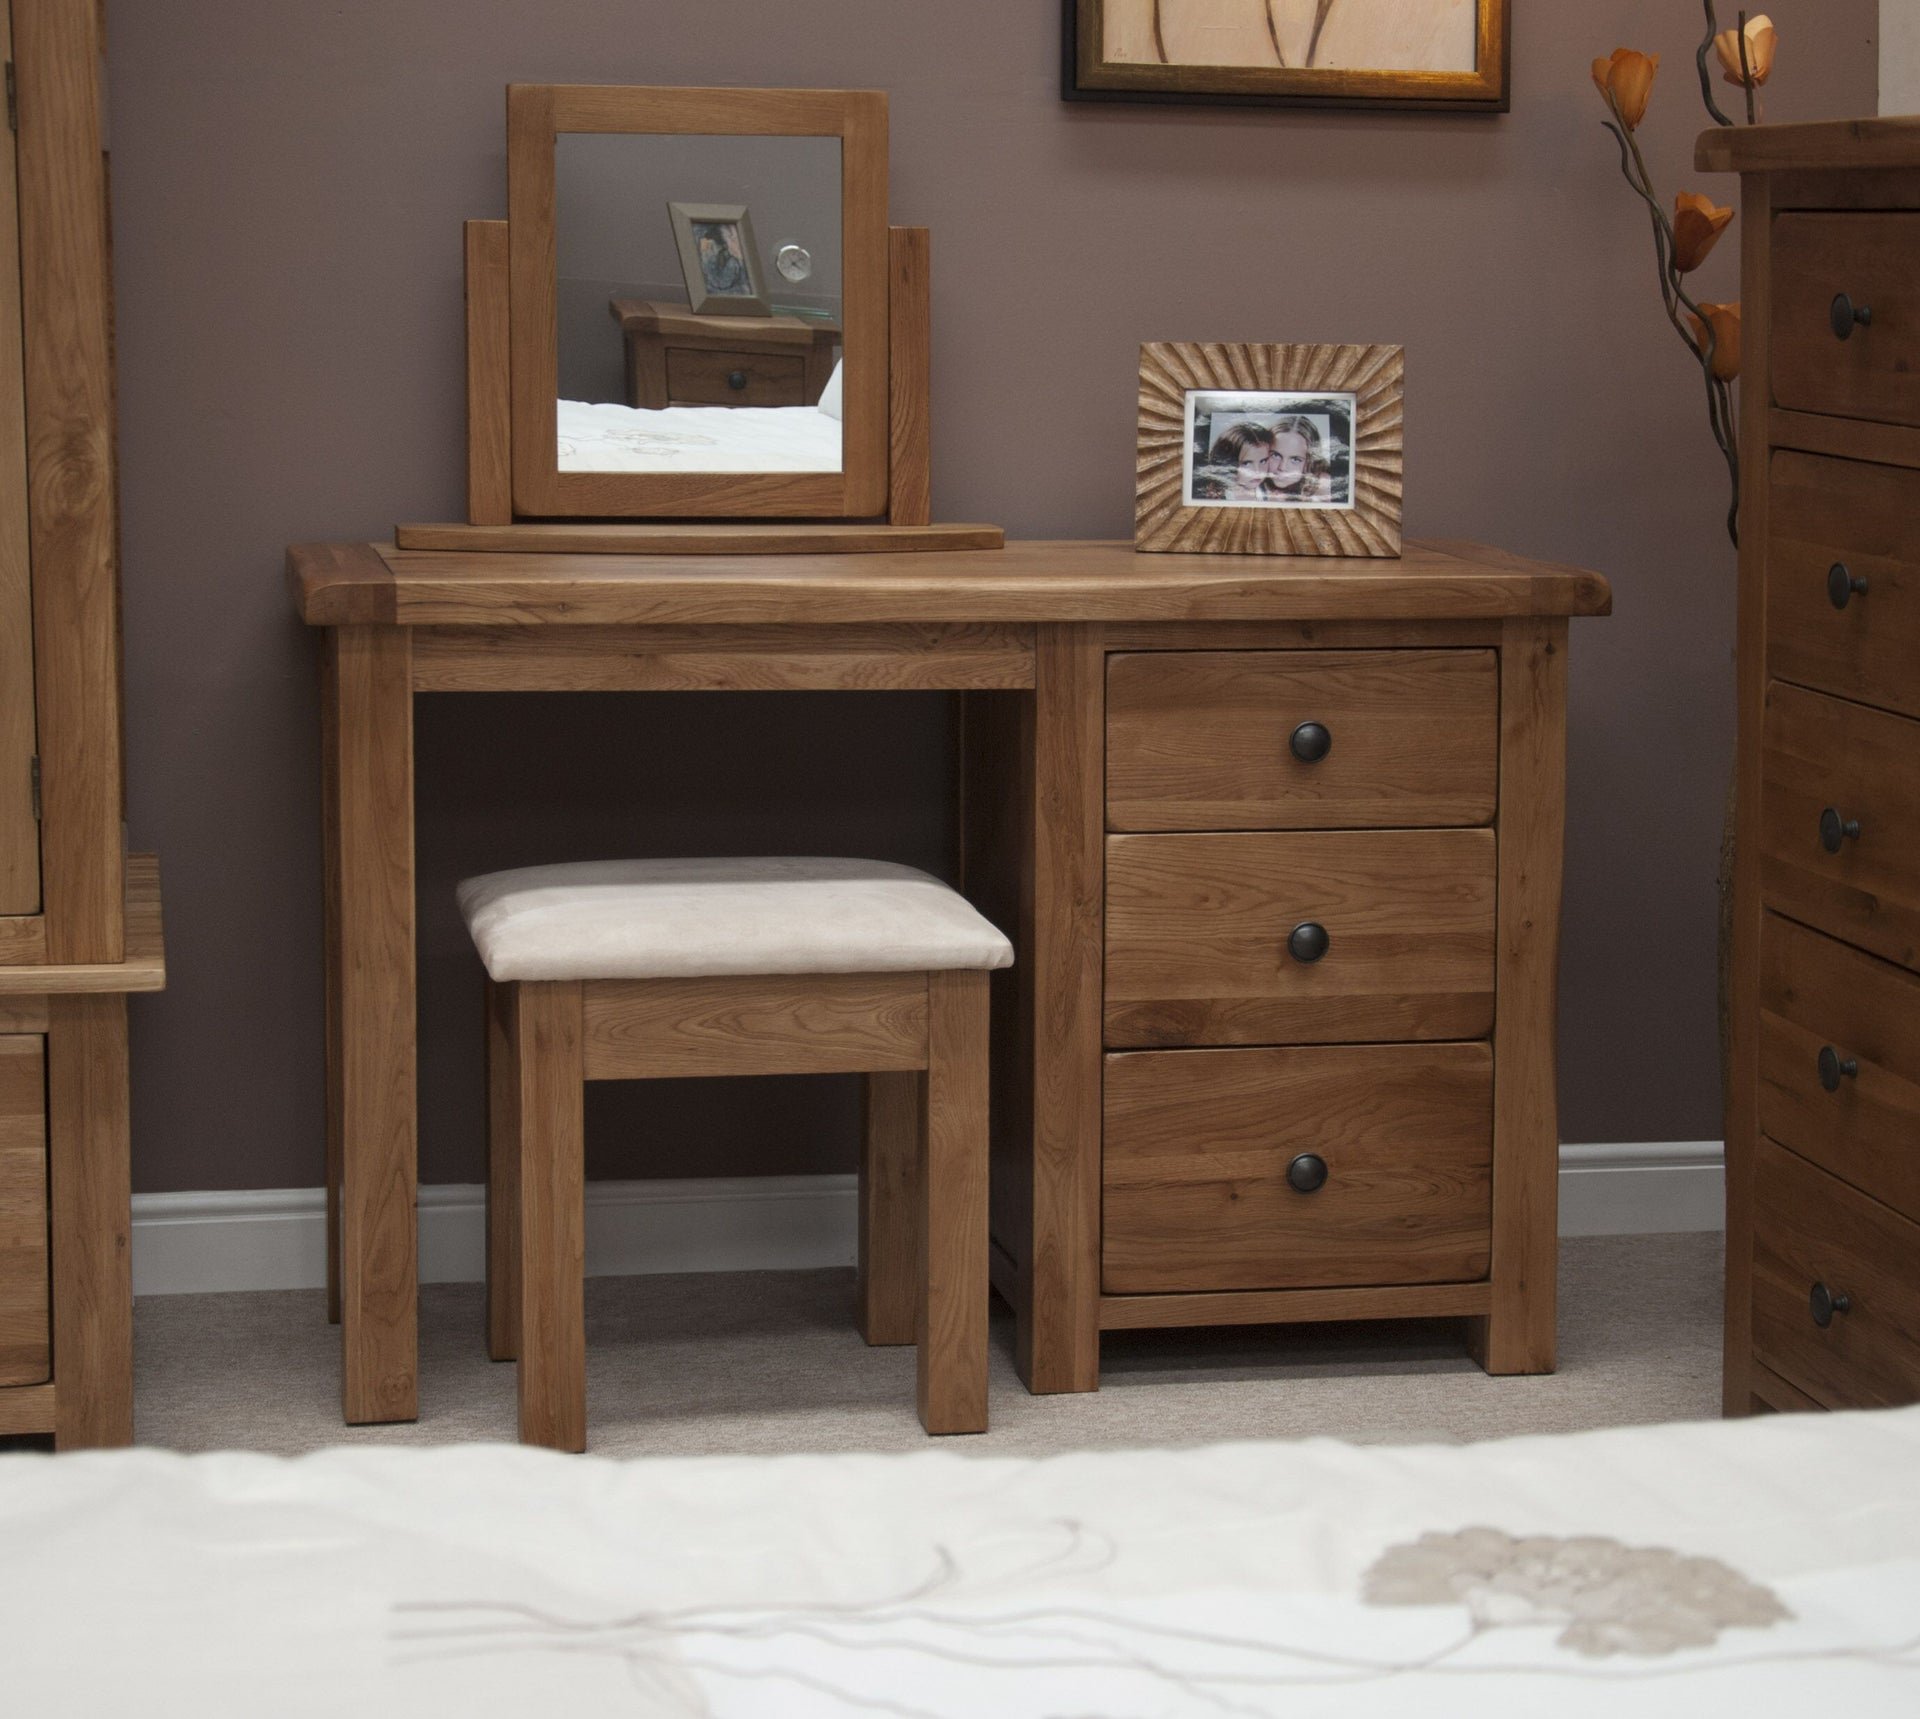 Rustic Oak Dressing Table And Stool